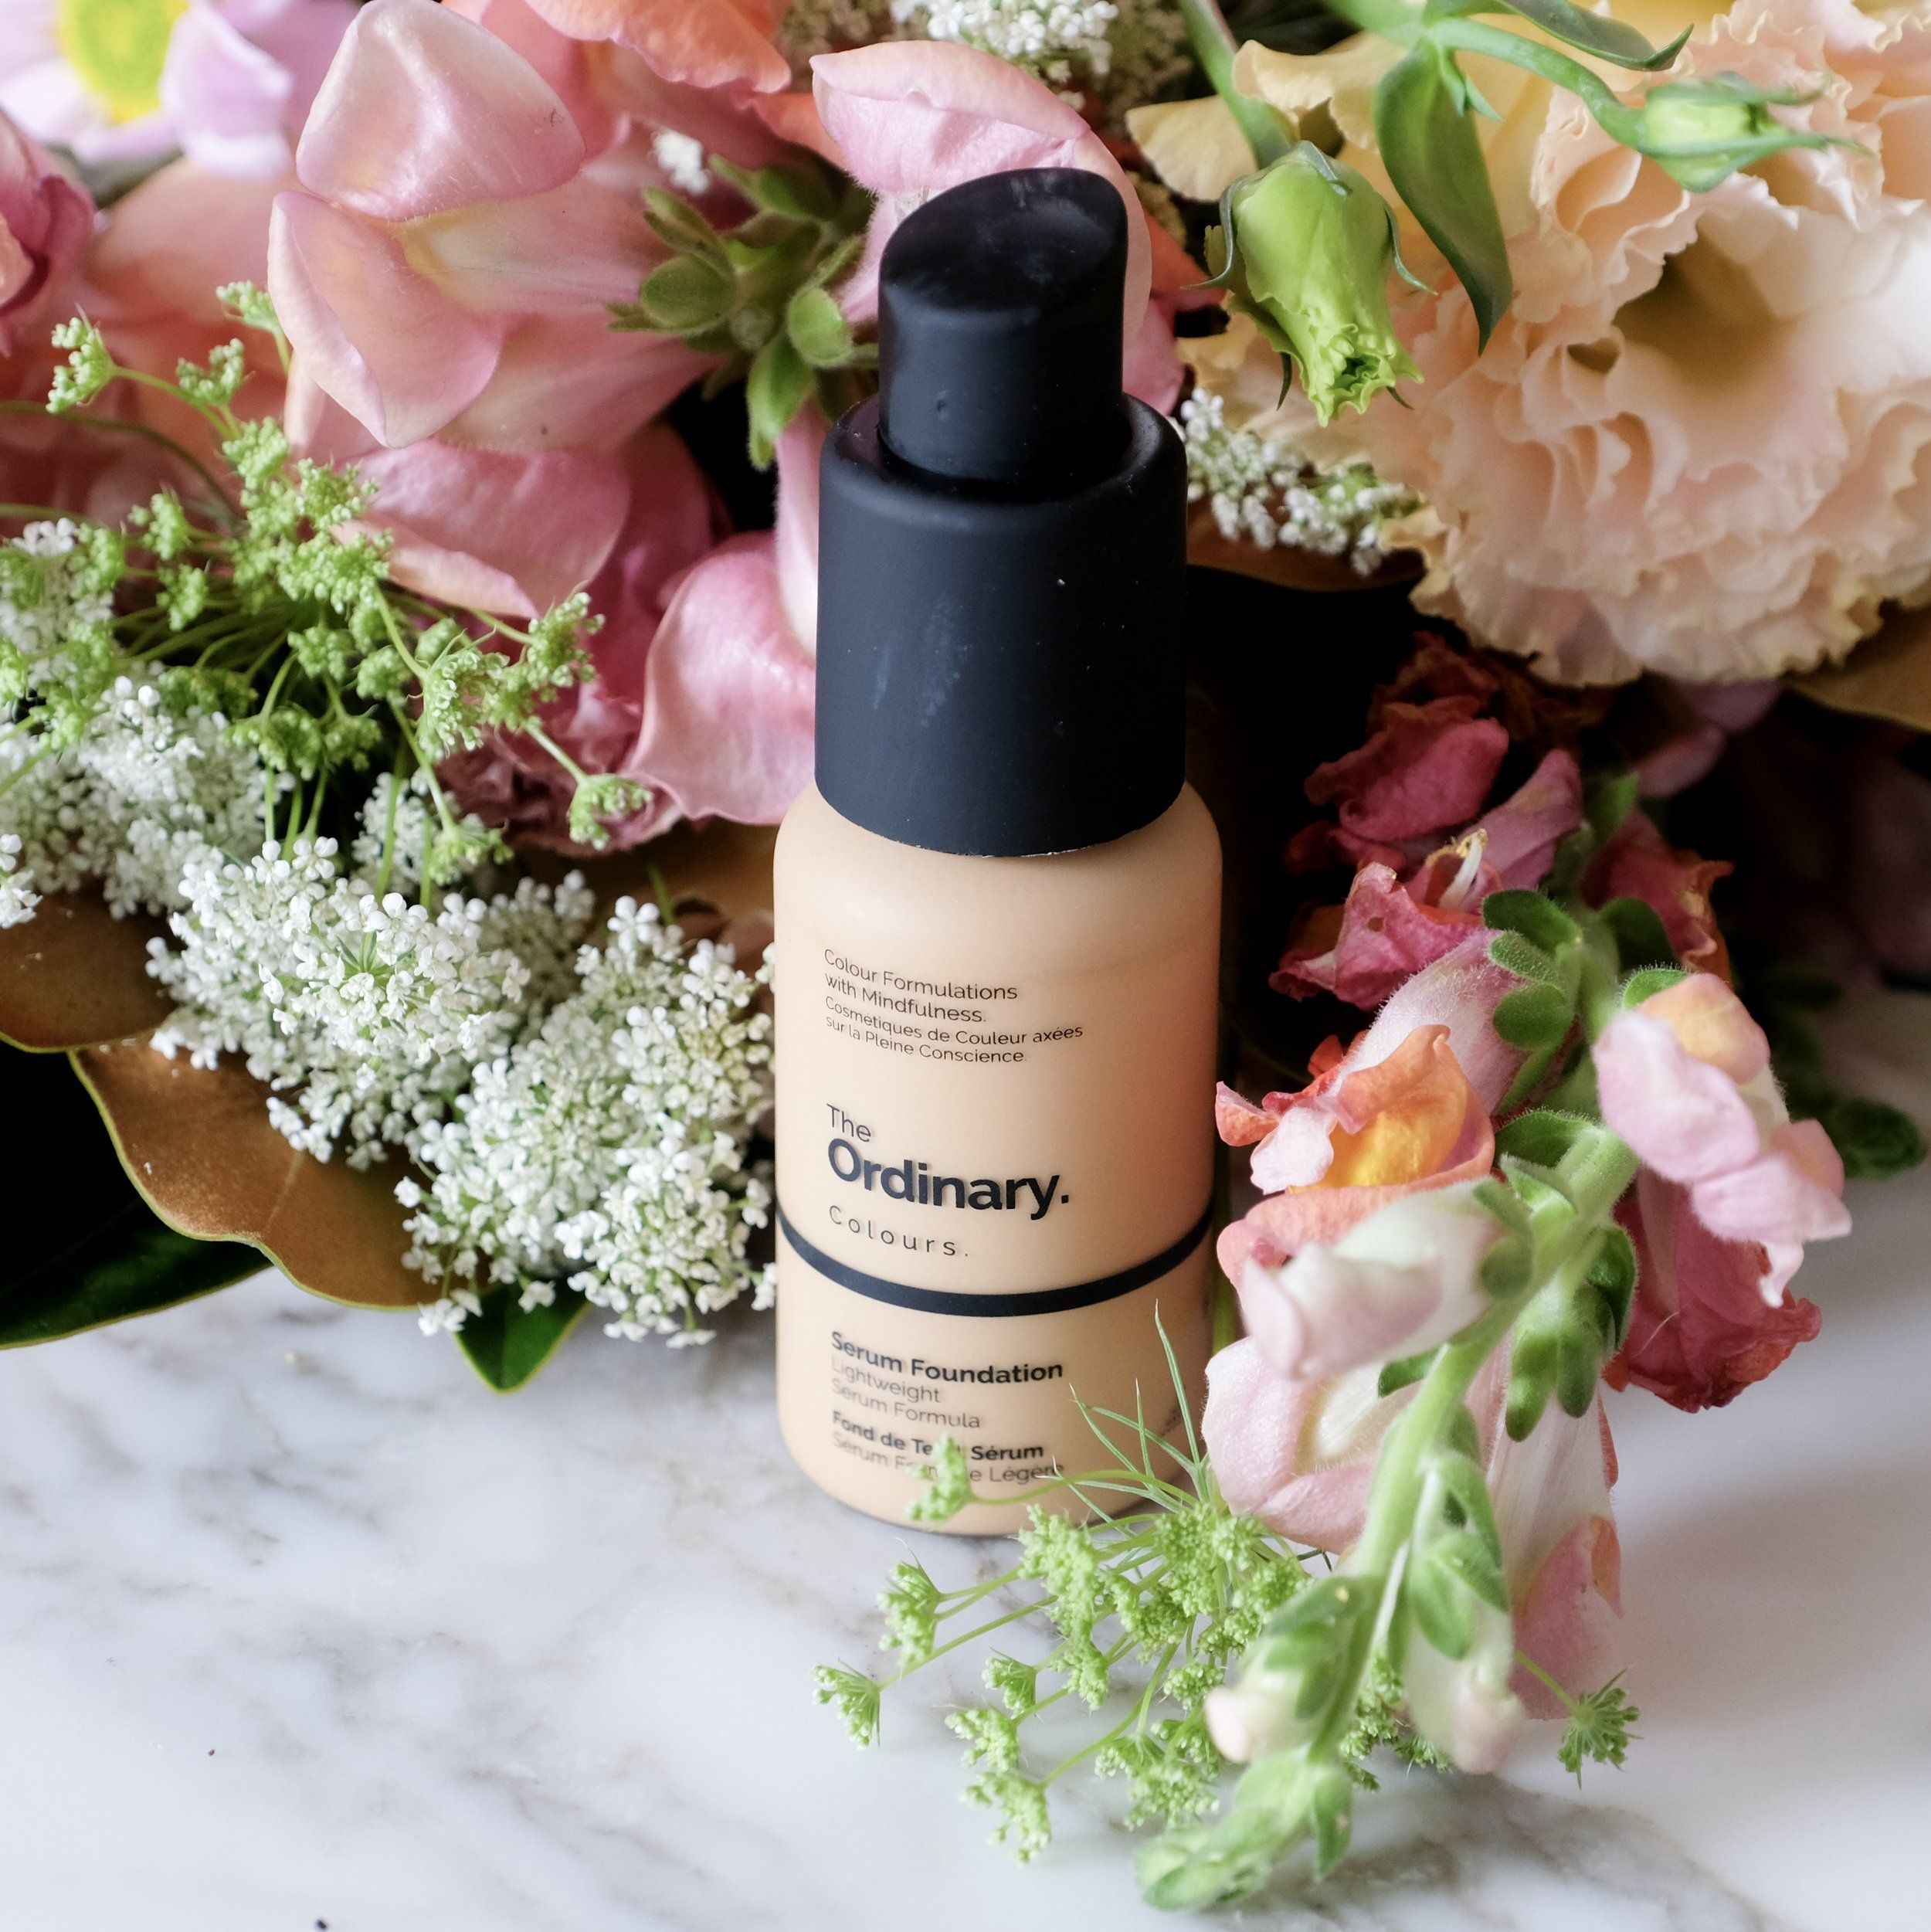 The Ordinary Serum + Coverage Foundation Review (1.0